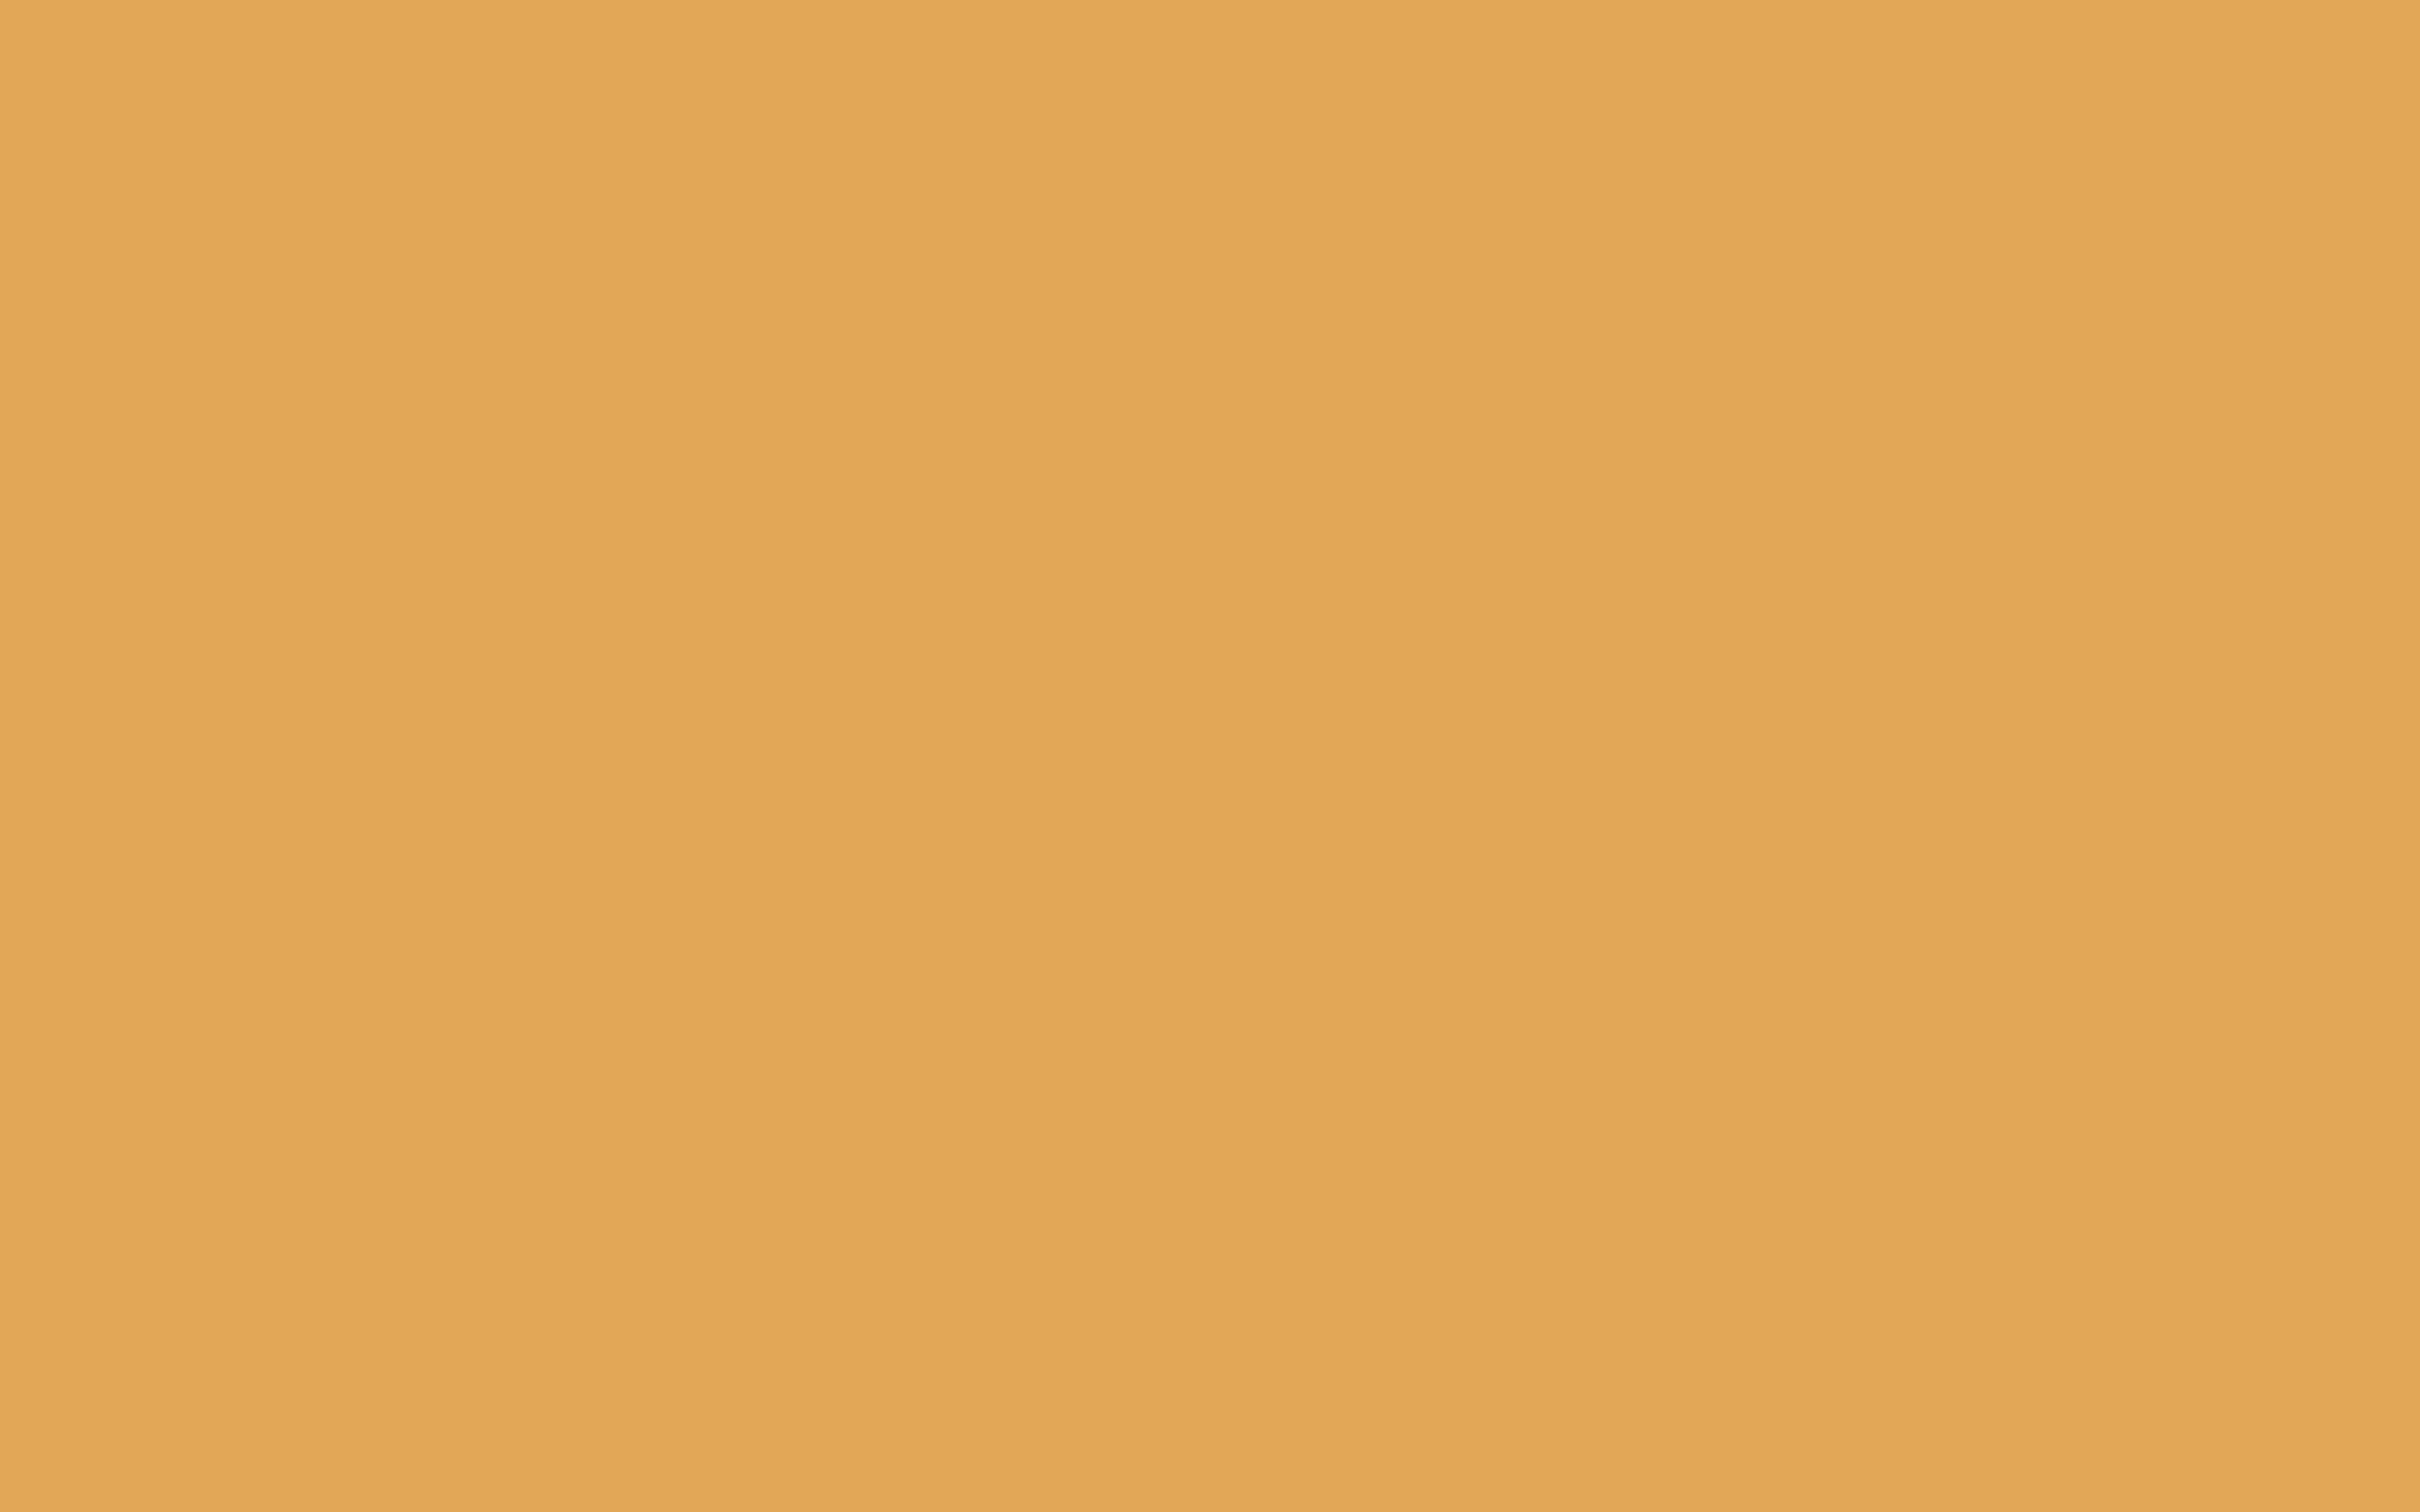 2560x1600 Indian Yellow Solid Color Background